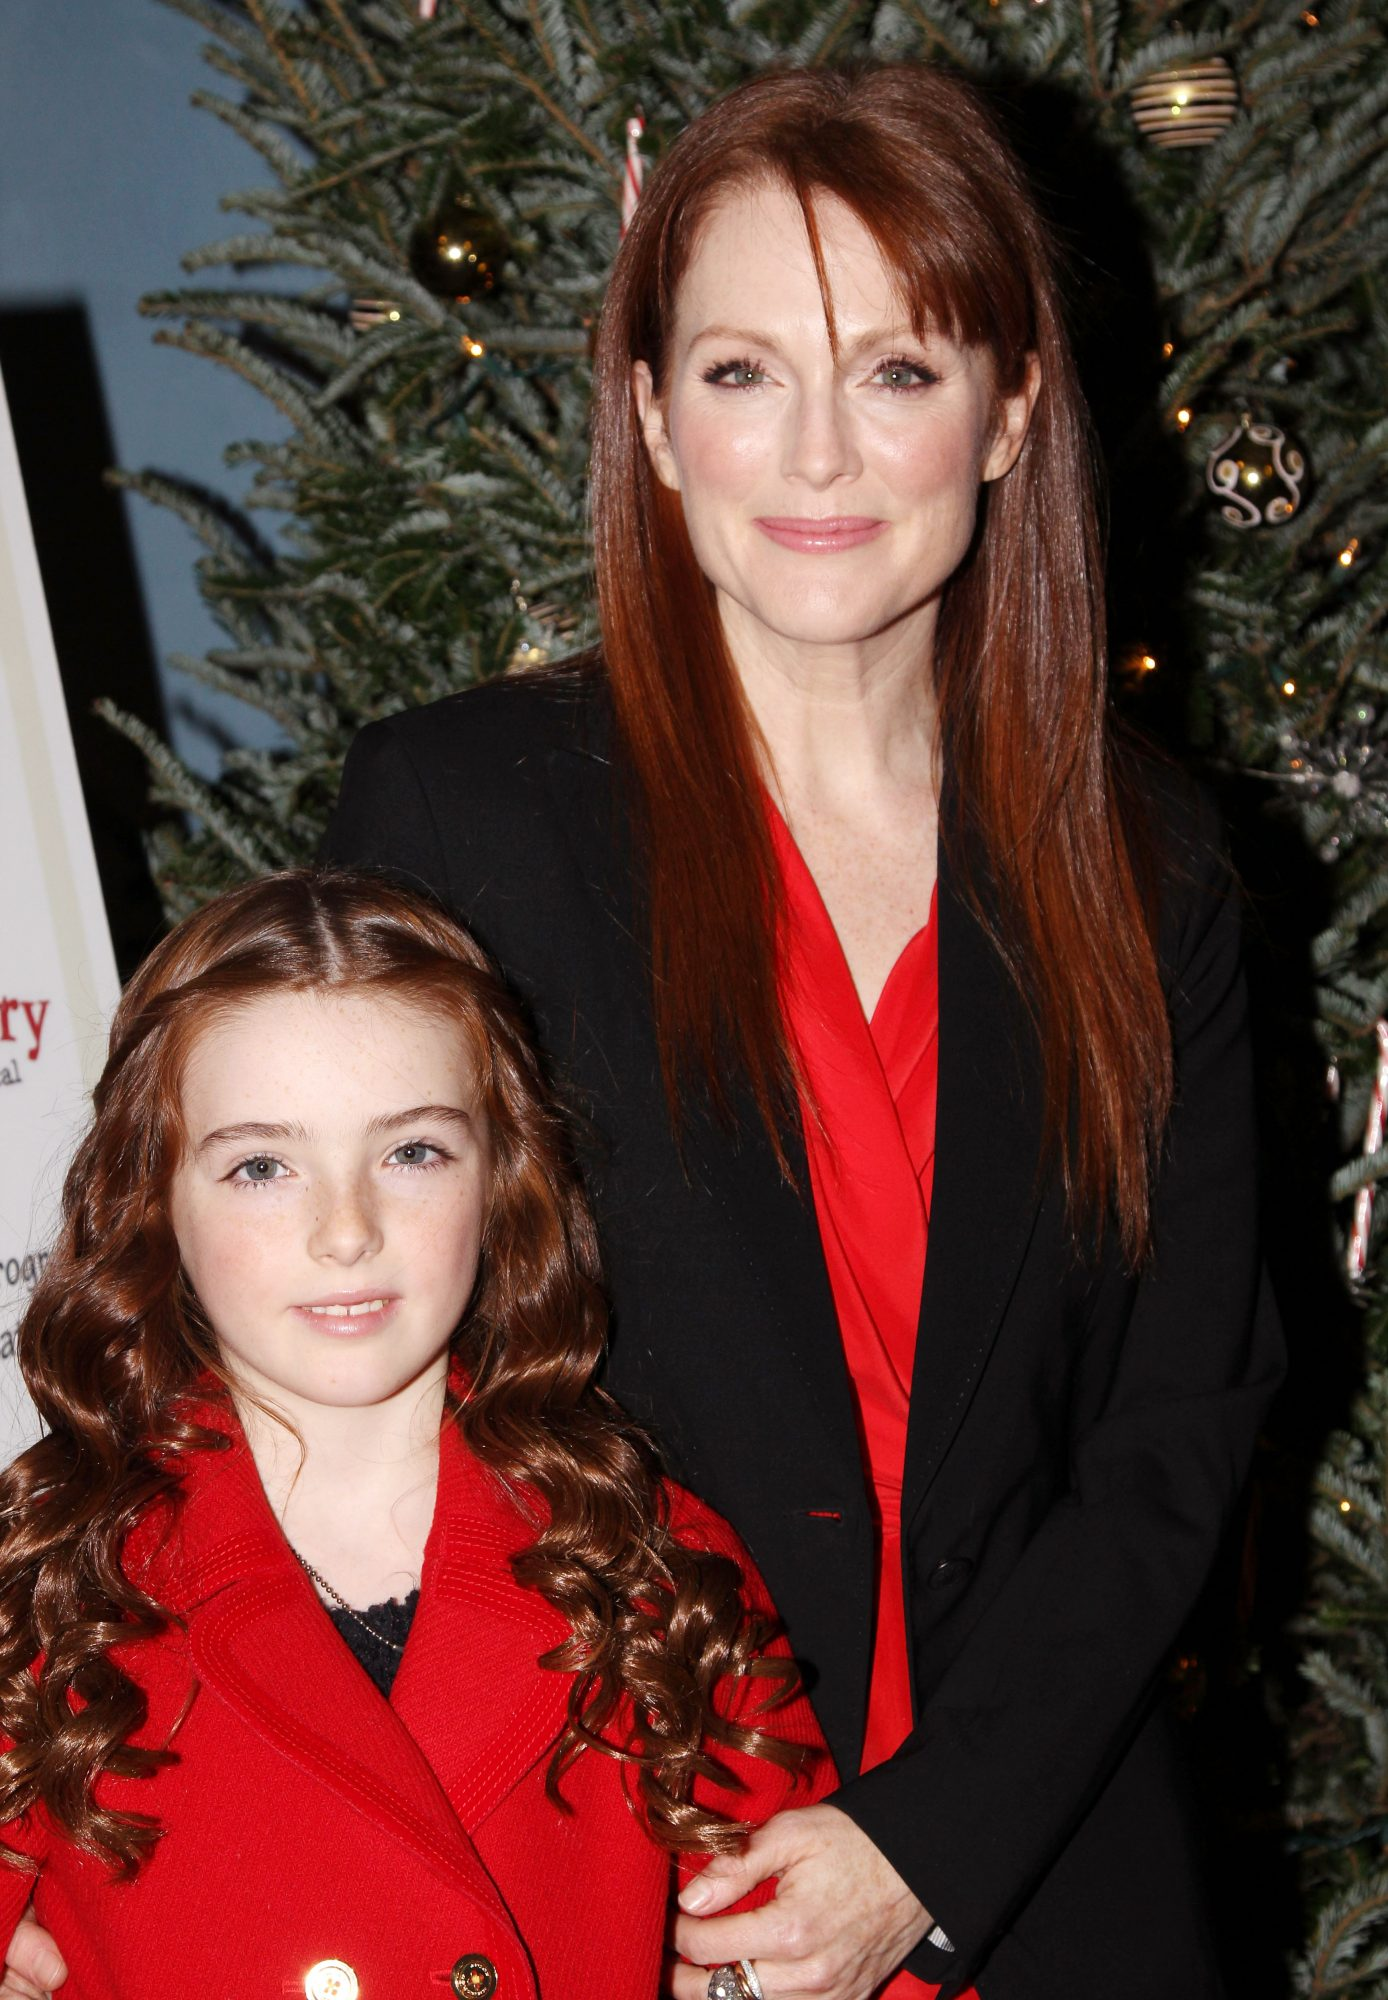 <p>When they dared to match in red.</p>